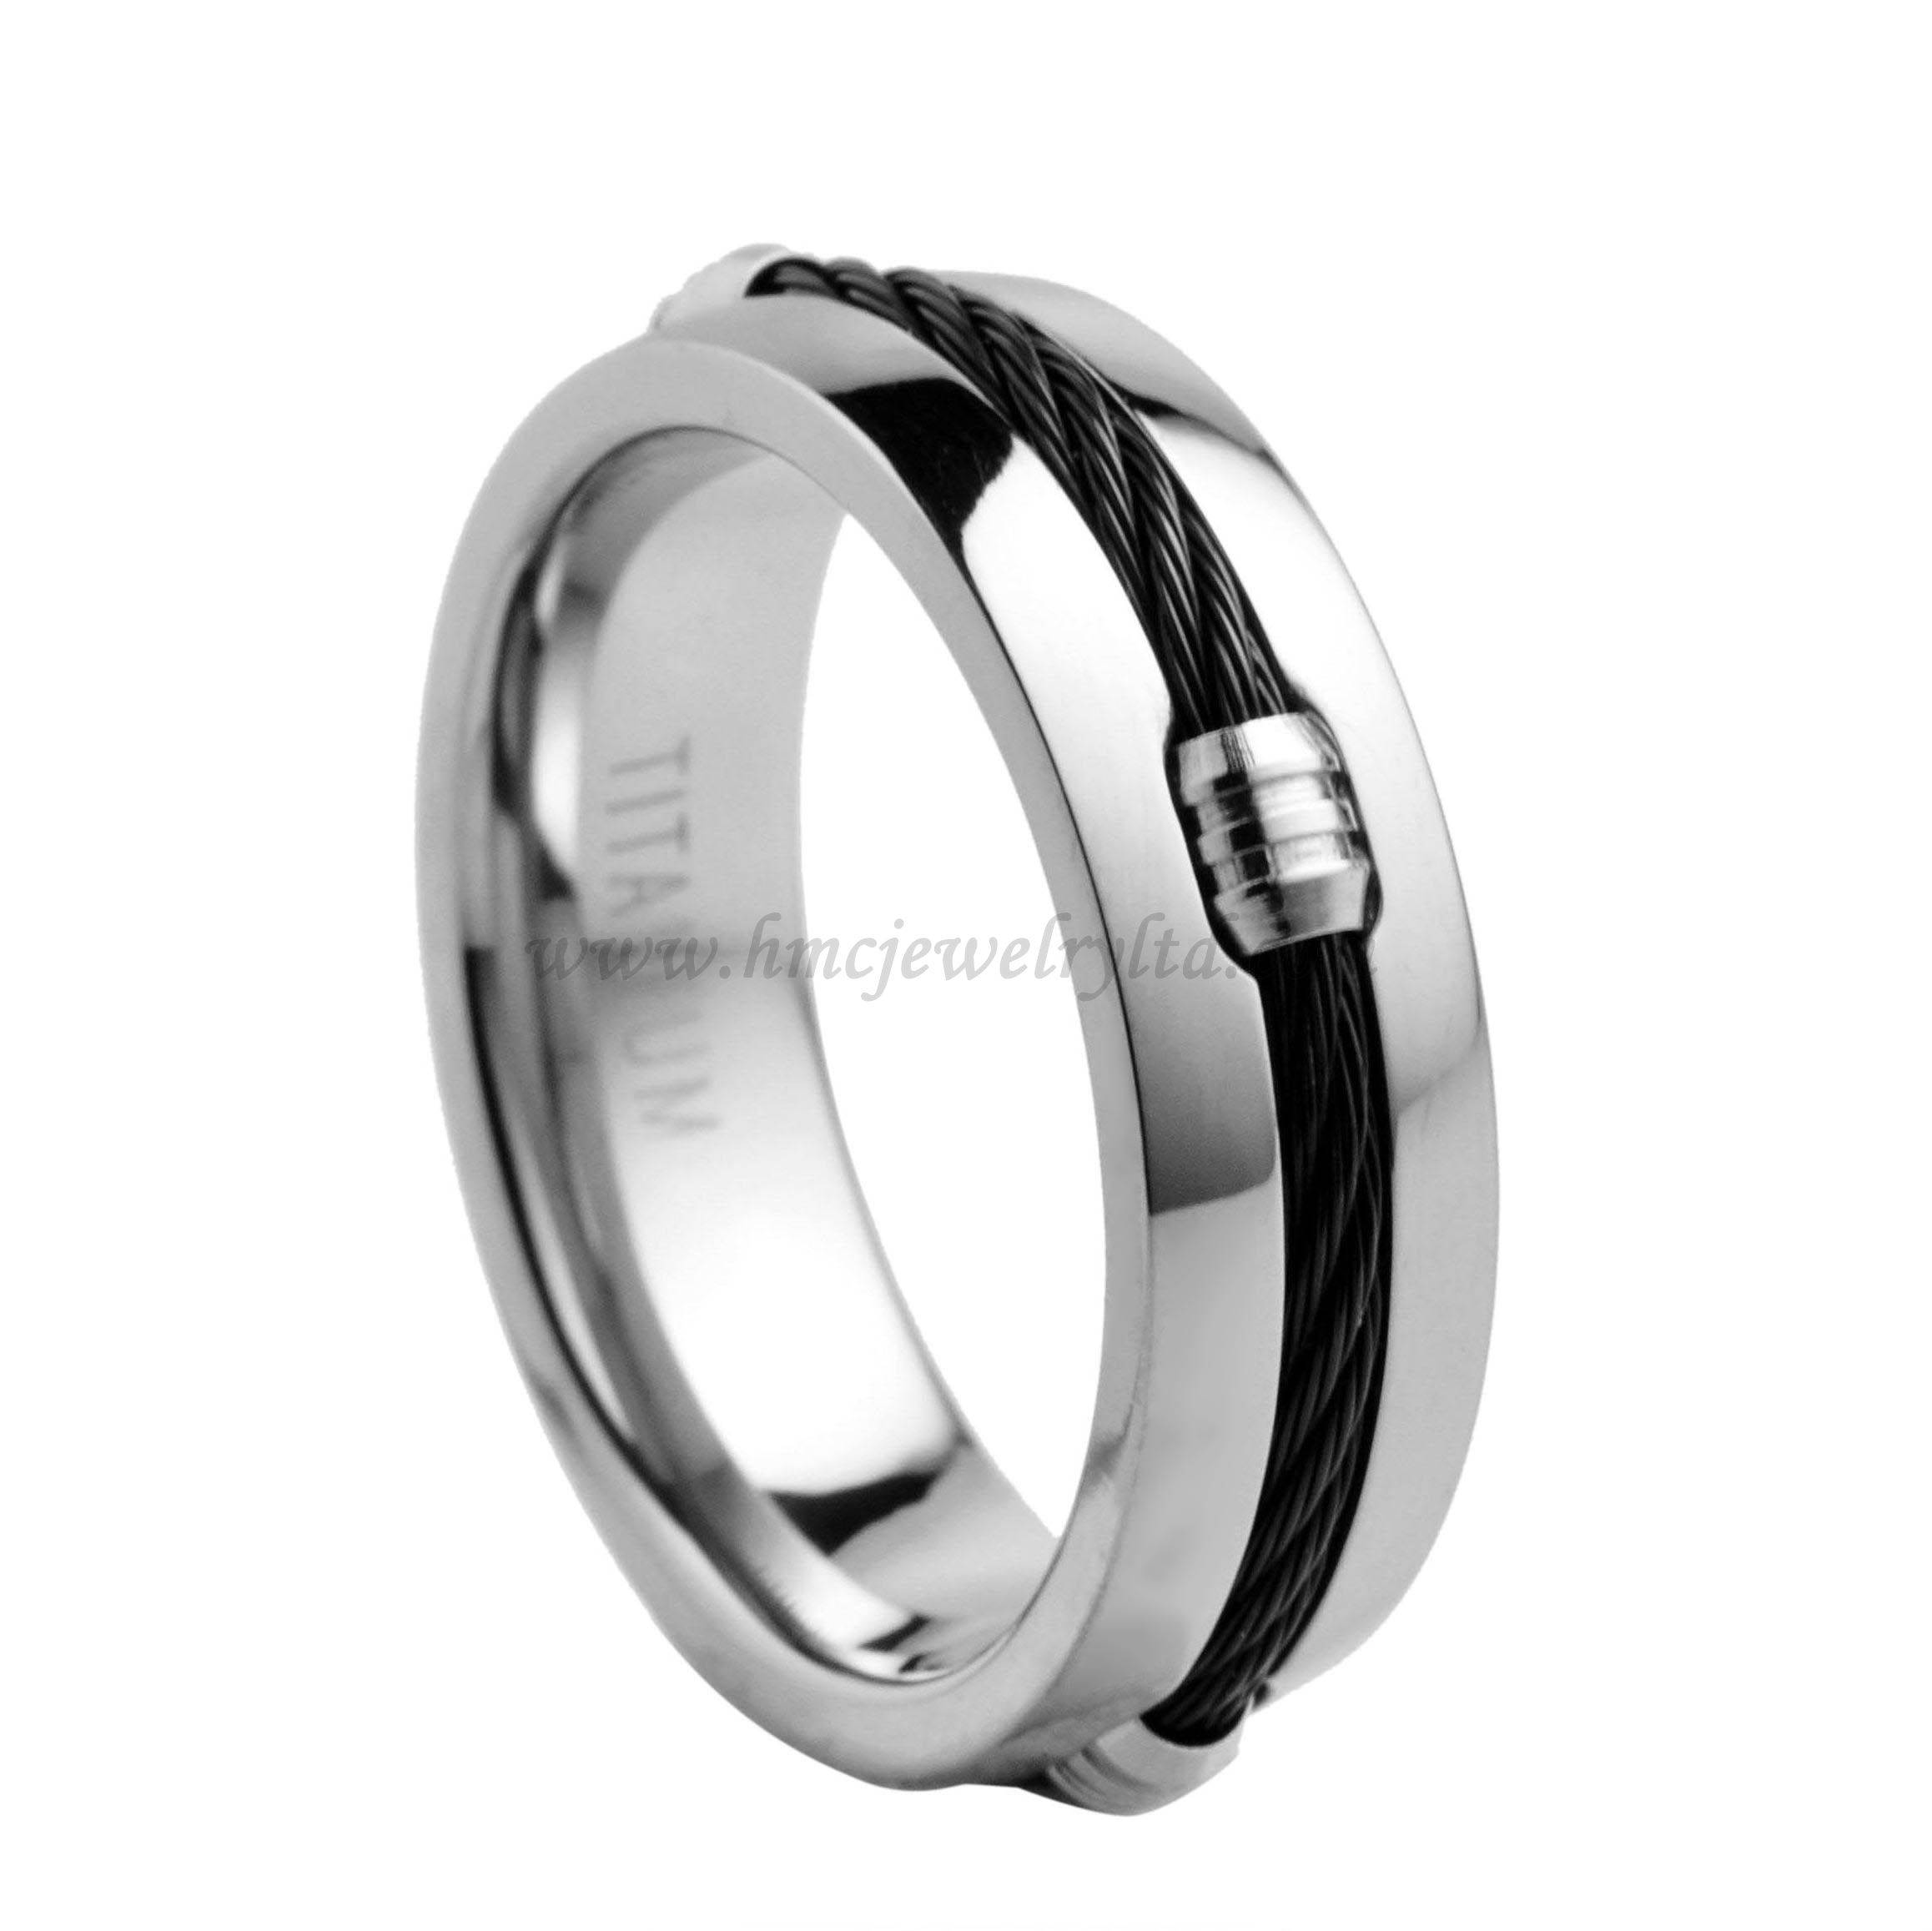 Mens Titanium Steel Cable Ring Without Stones